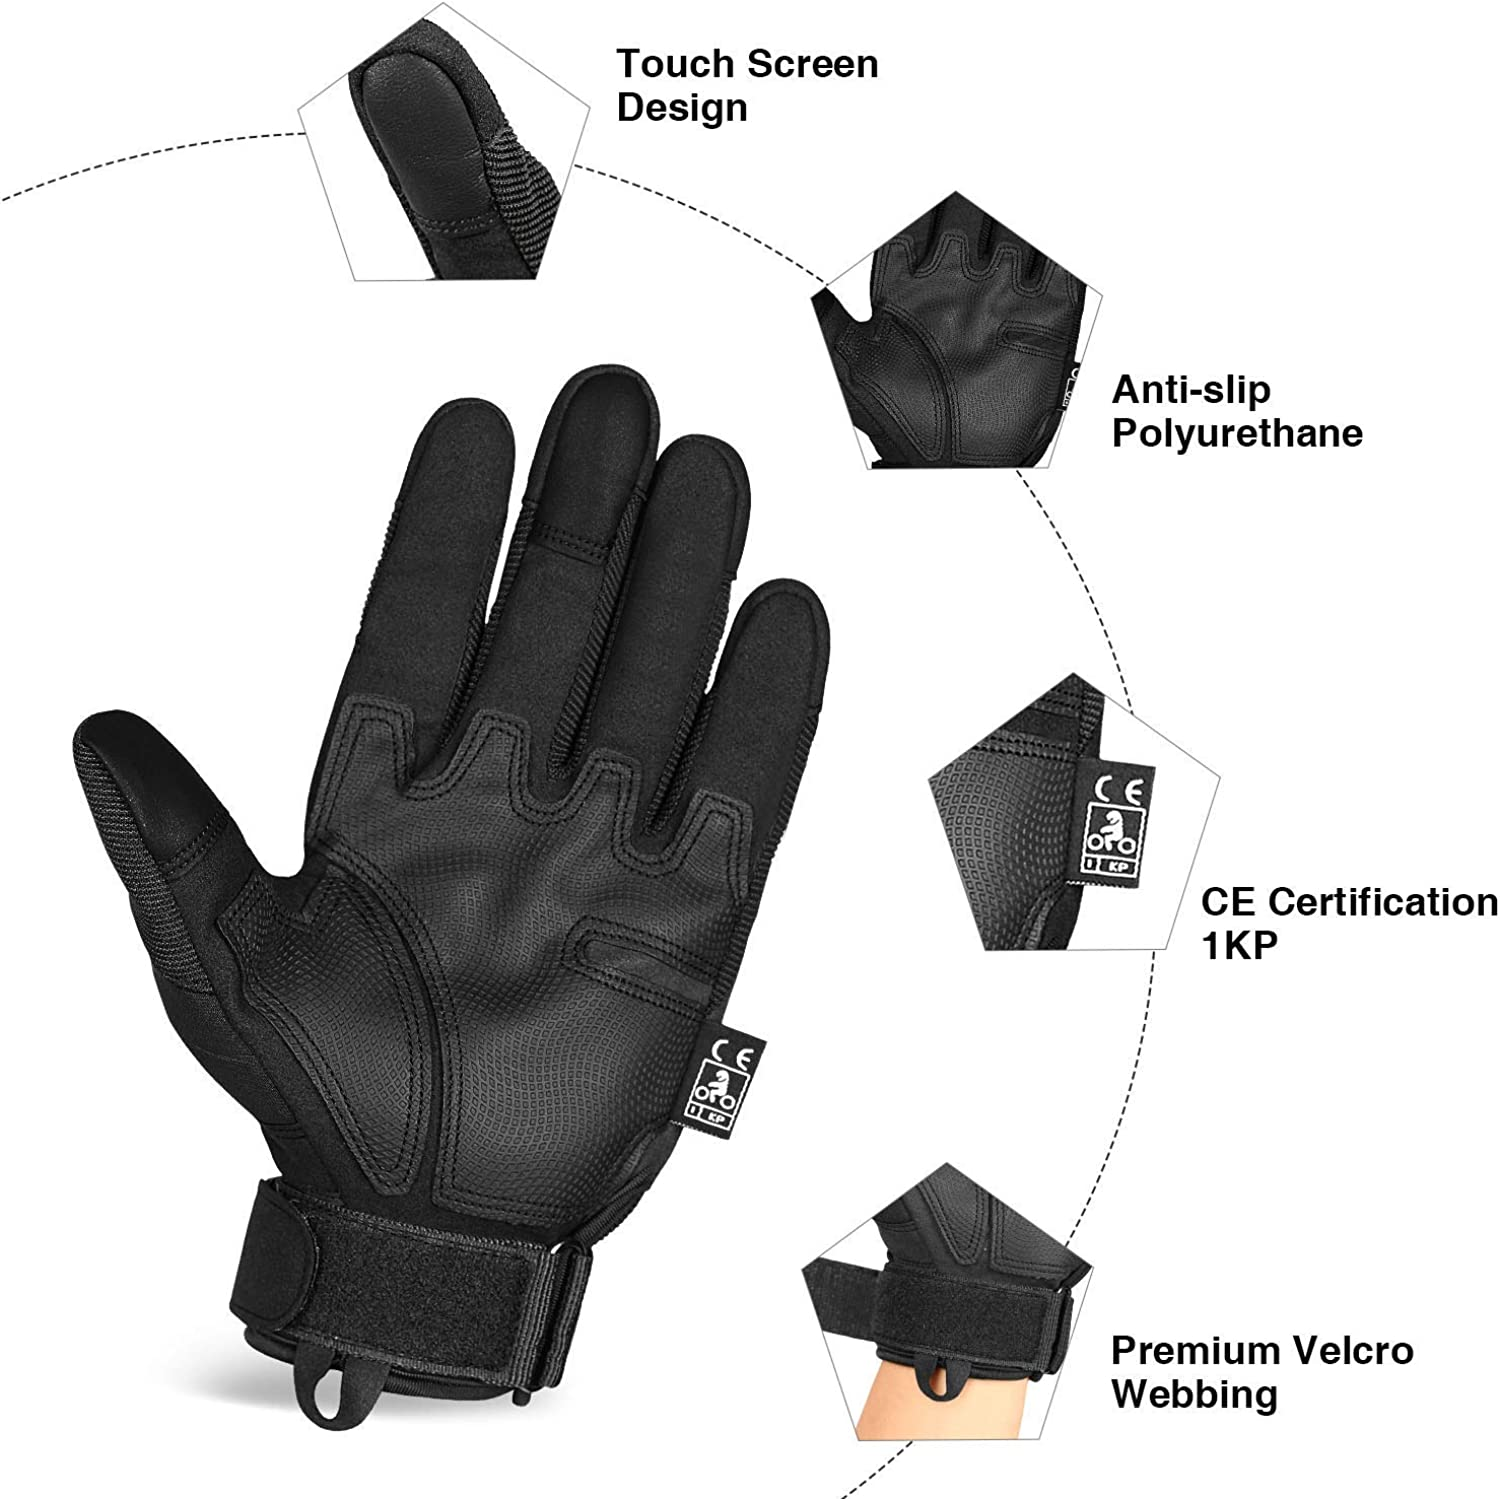 Unigear Men S Motorcycle Gloves Touchscreen Motorcycle Gloves With Hard Knuckle Lightweight Cycling Gloves Also Suitable For Paintball Airsoft Military Tactical Gloves Bekleidung